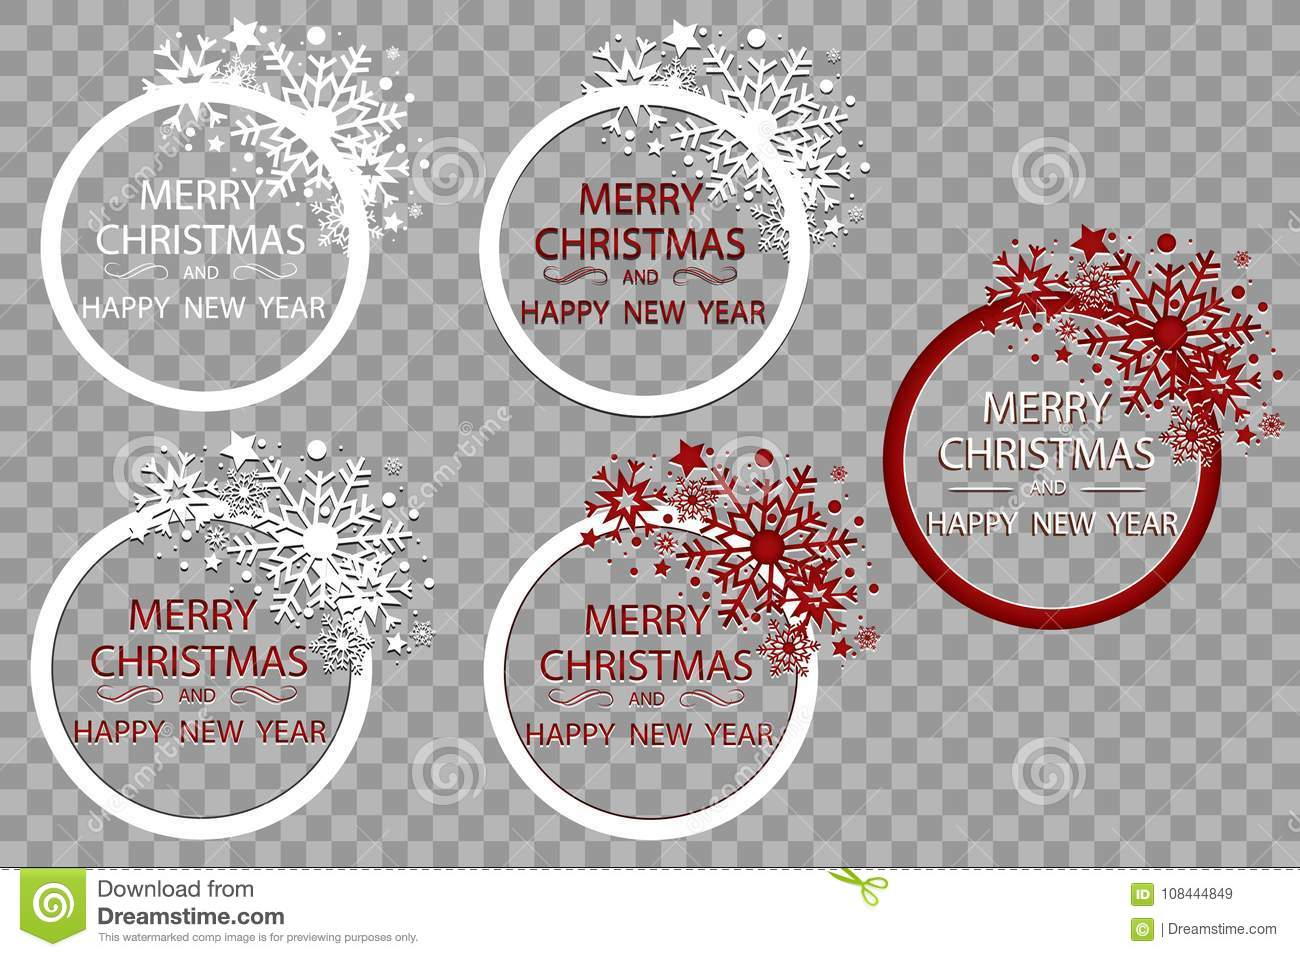 Happy New Year Merry Christmas Greeting Card Golden ...